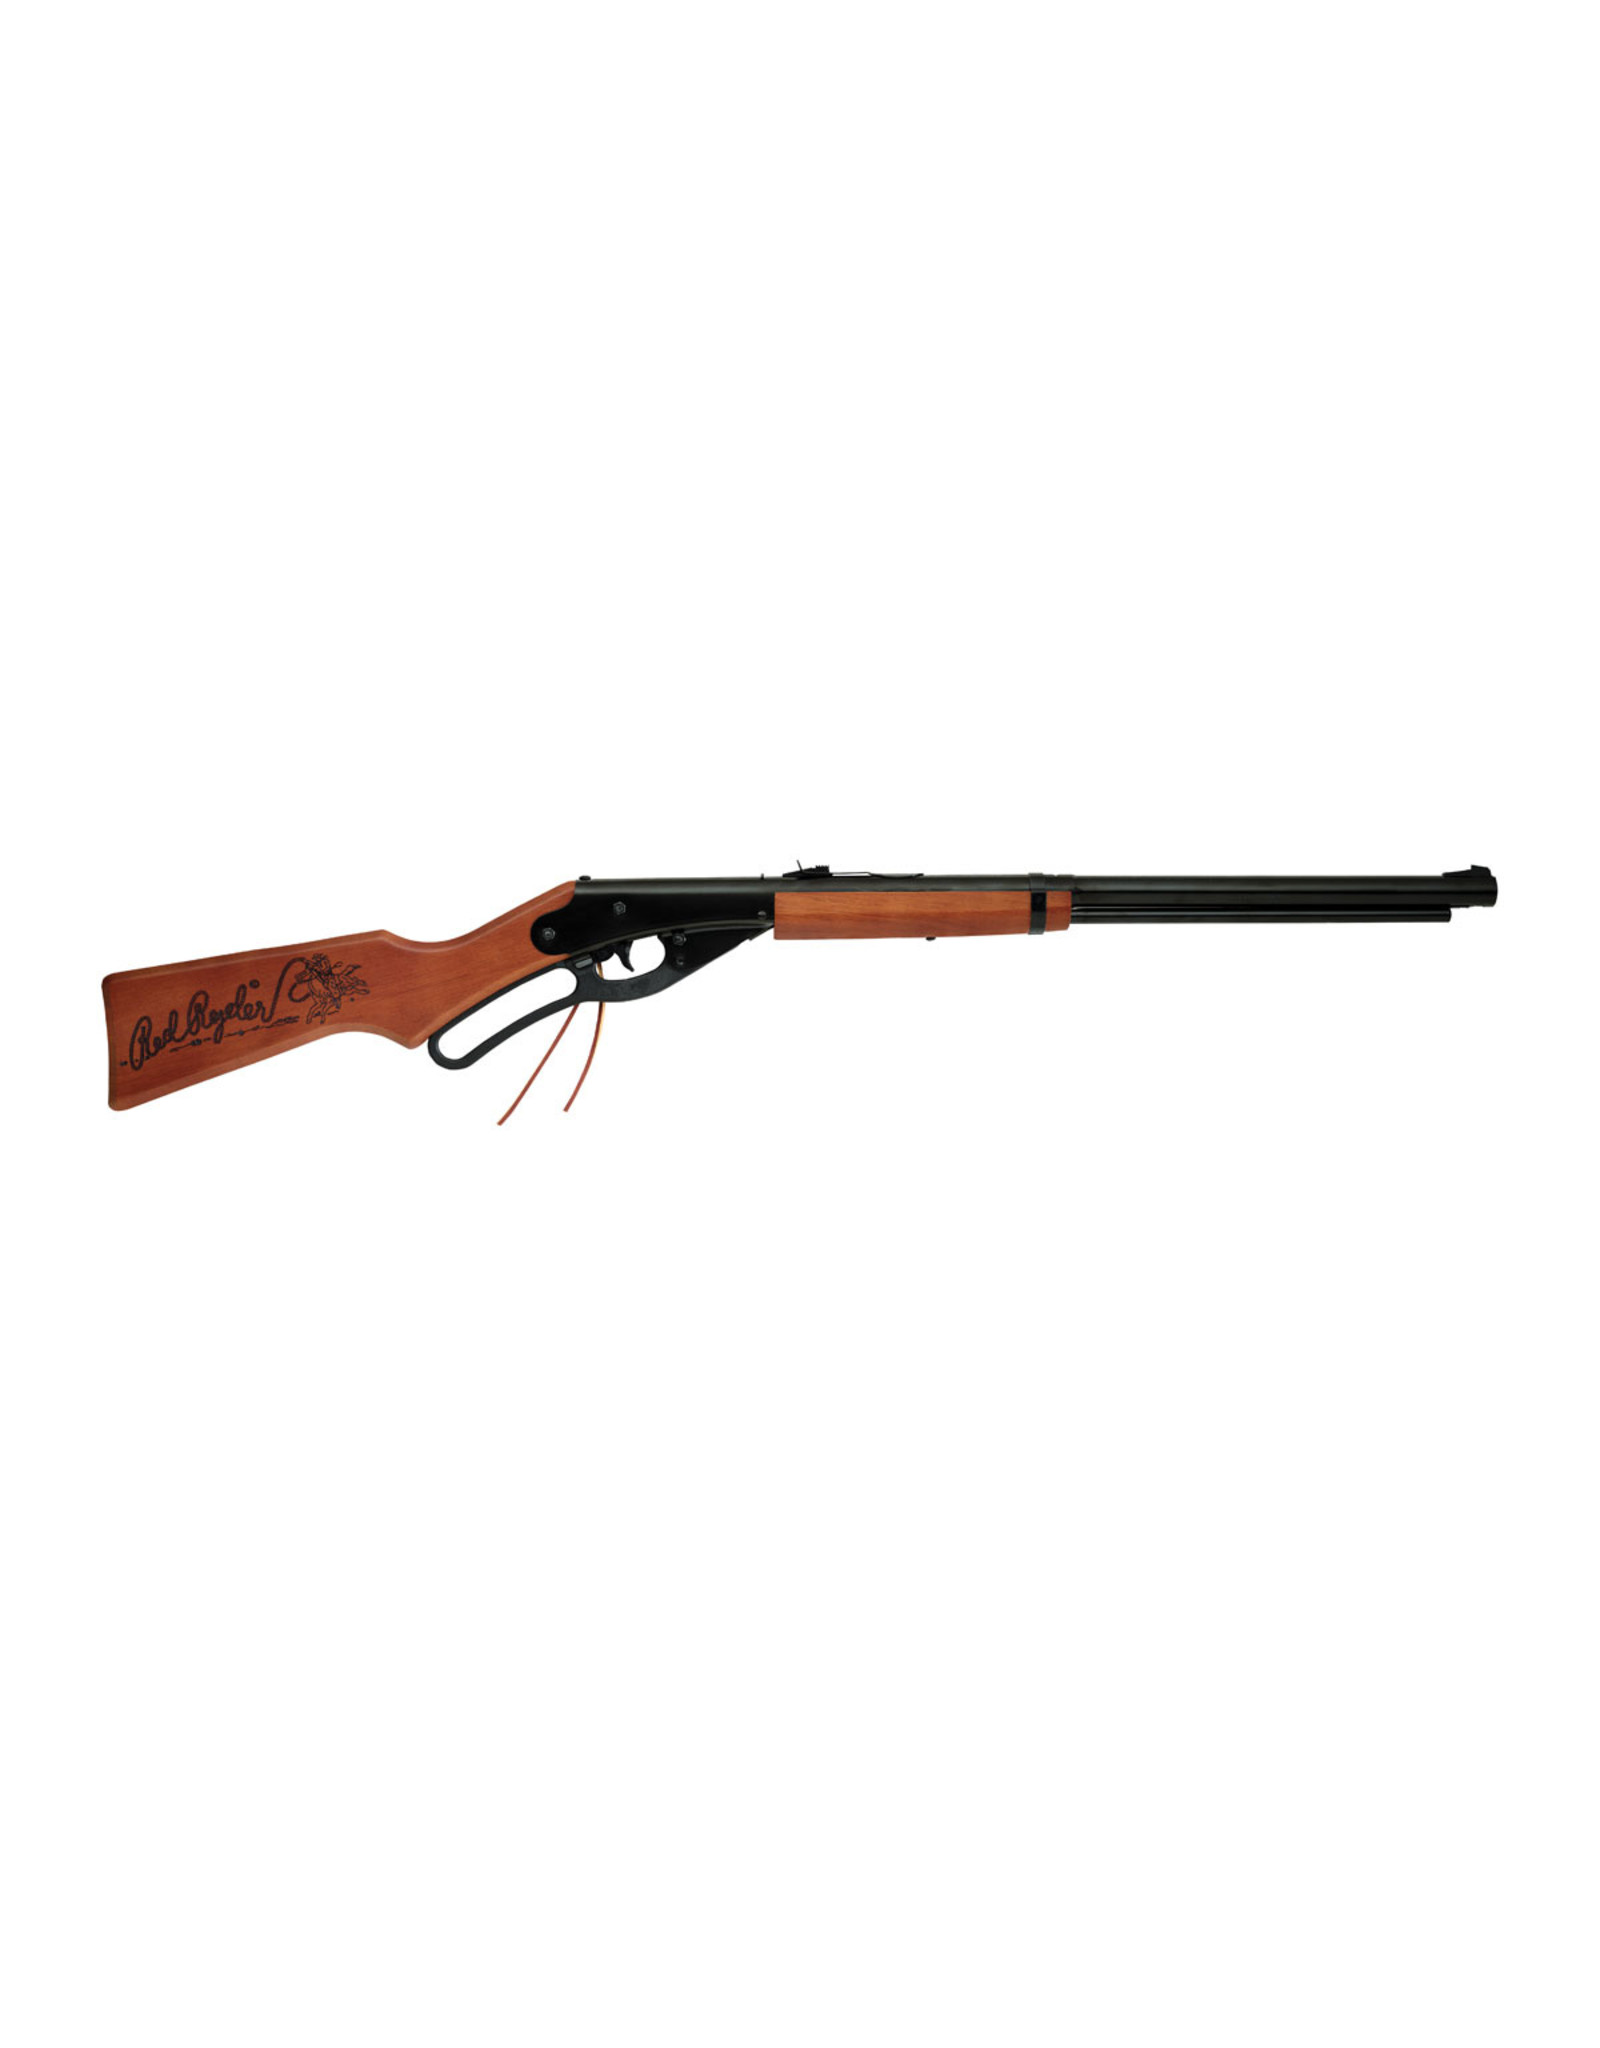 UMAREX DAISY RED RYDER .177 CALIBER BB GUN